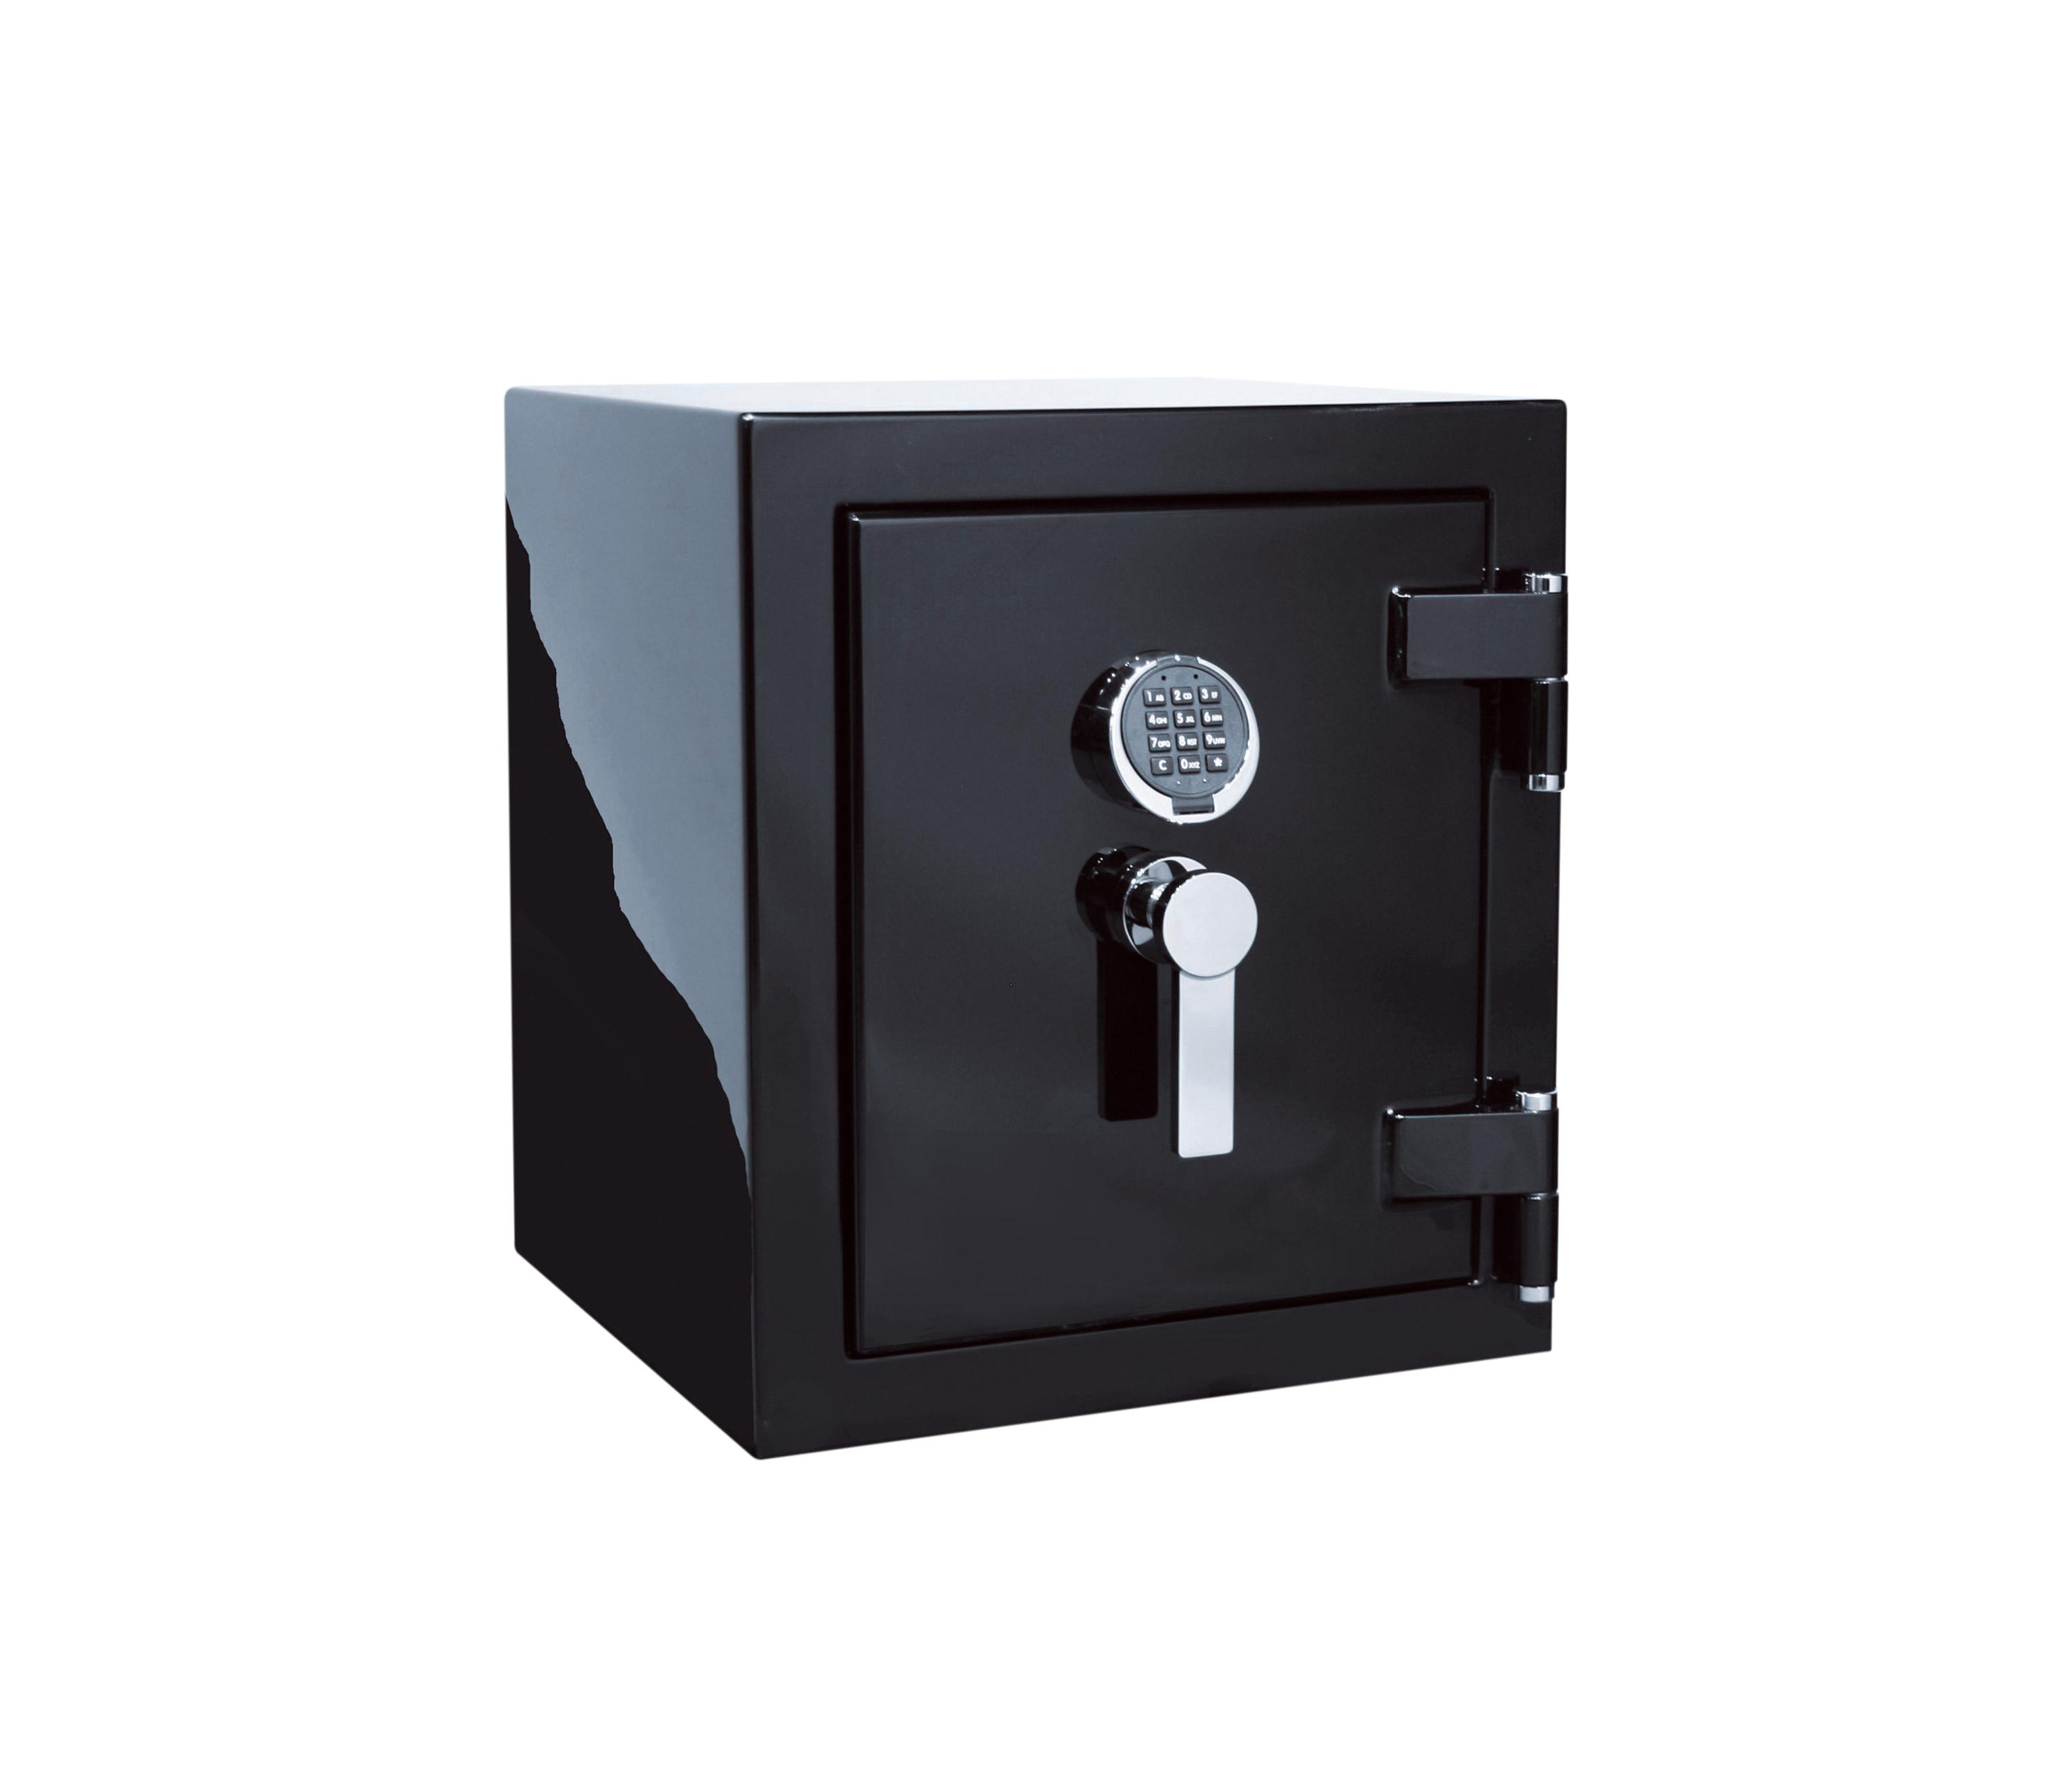 Hotel Cube Safe Valuables Storage Safes From